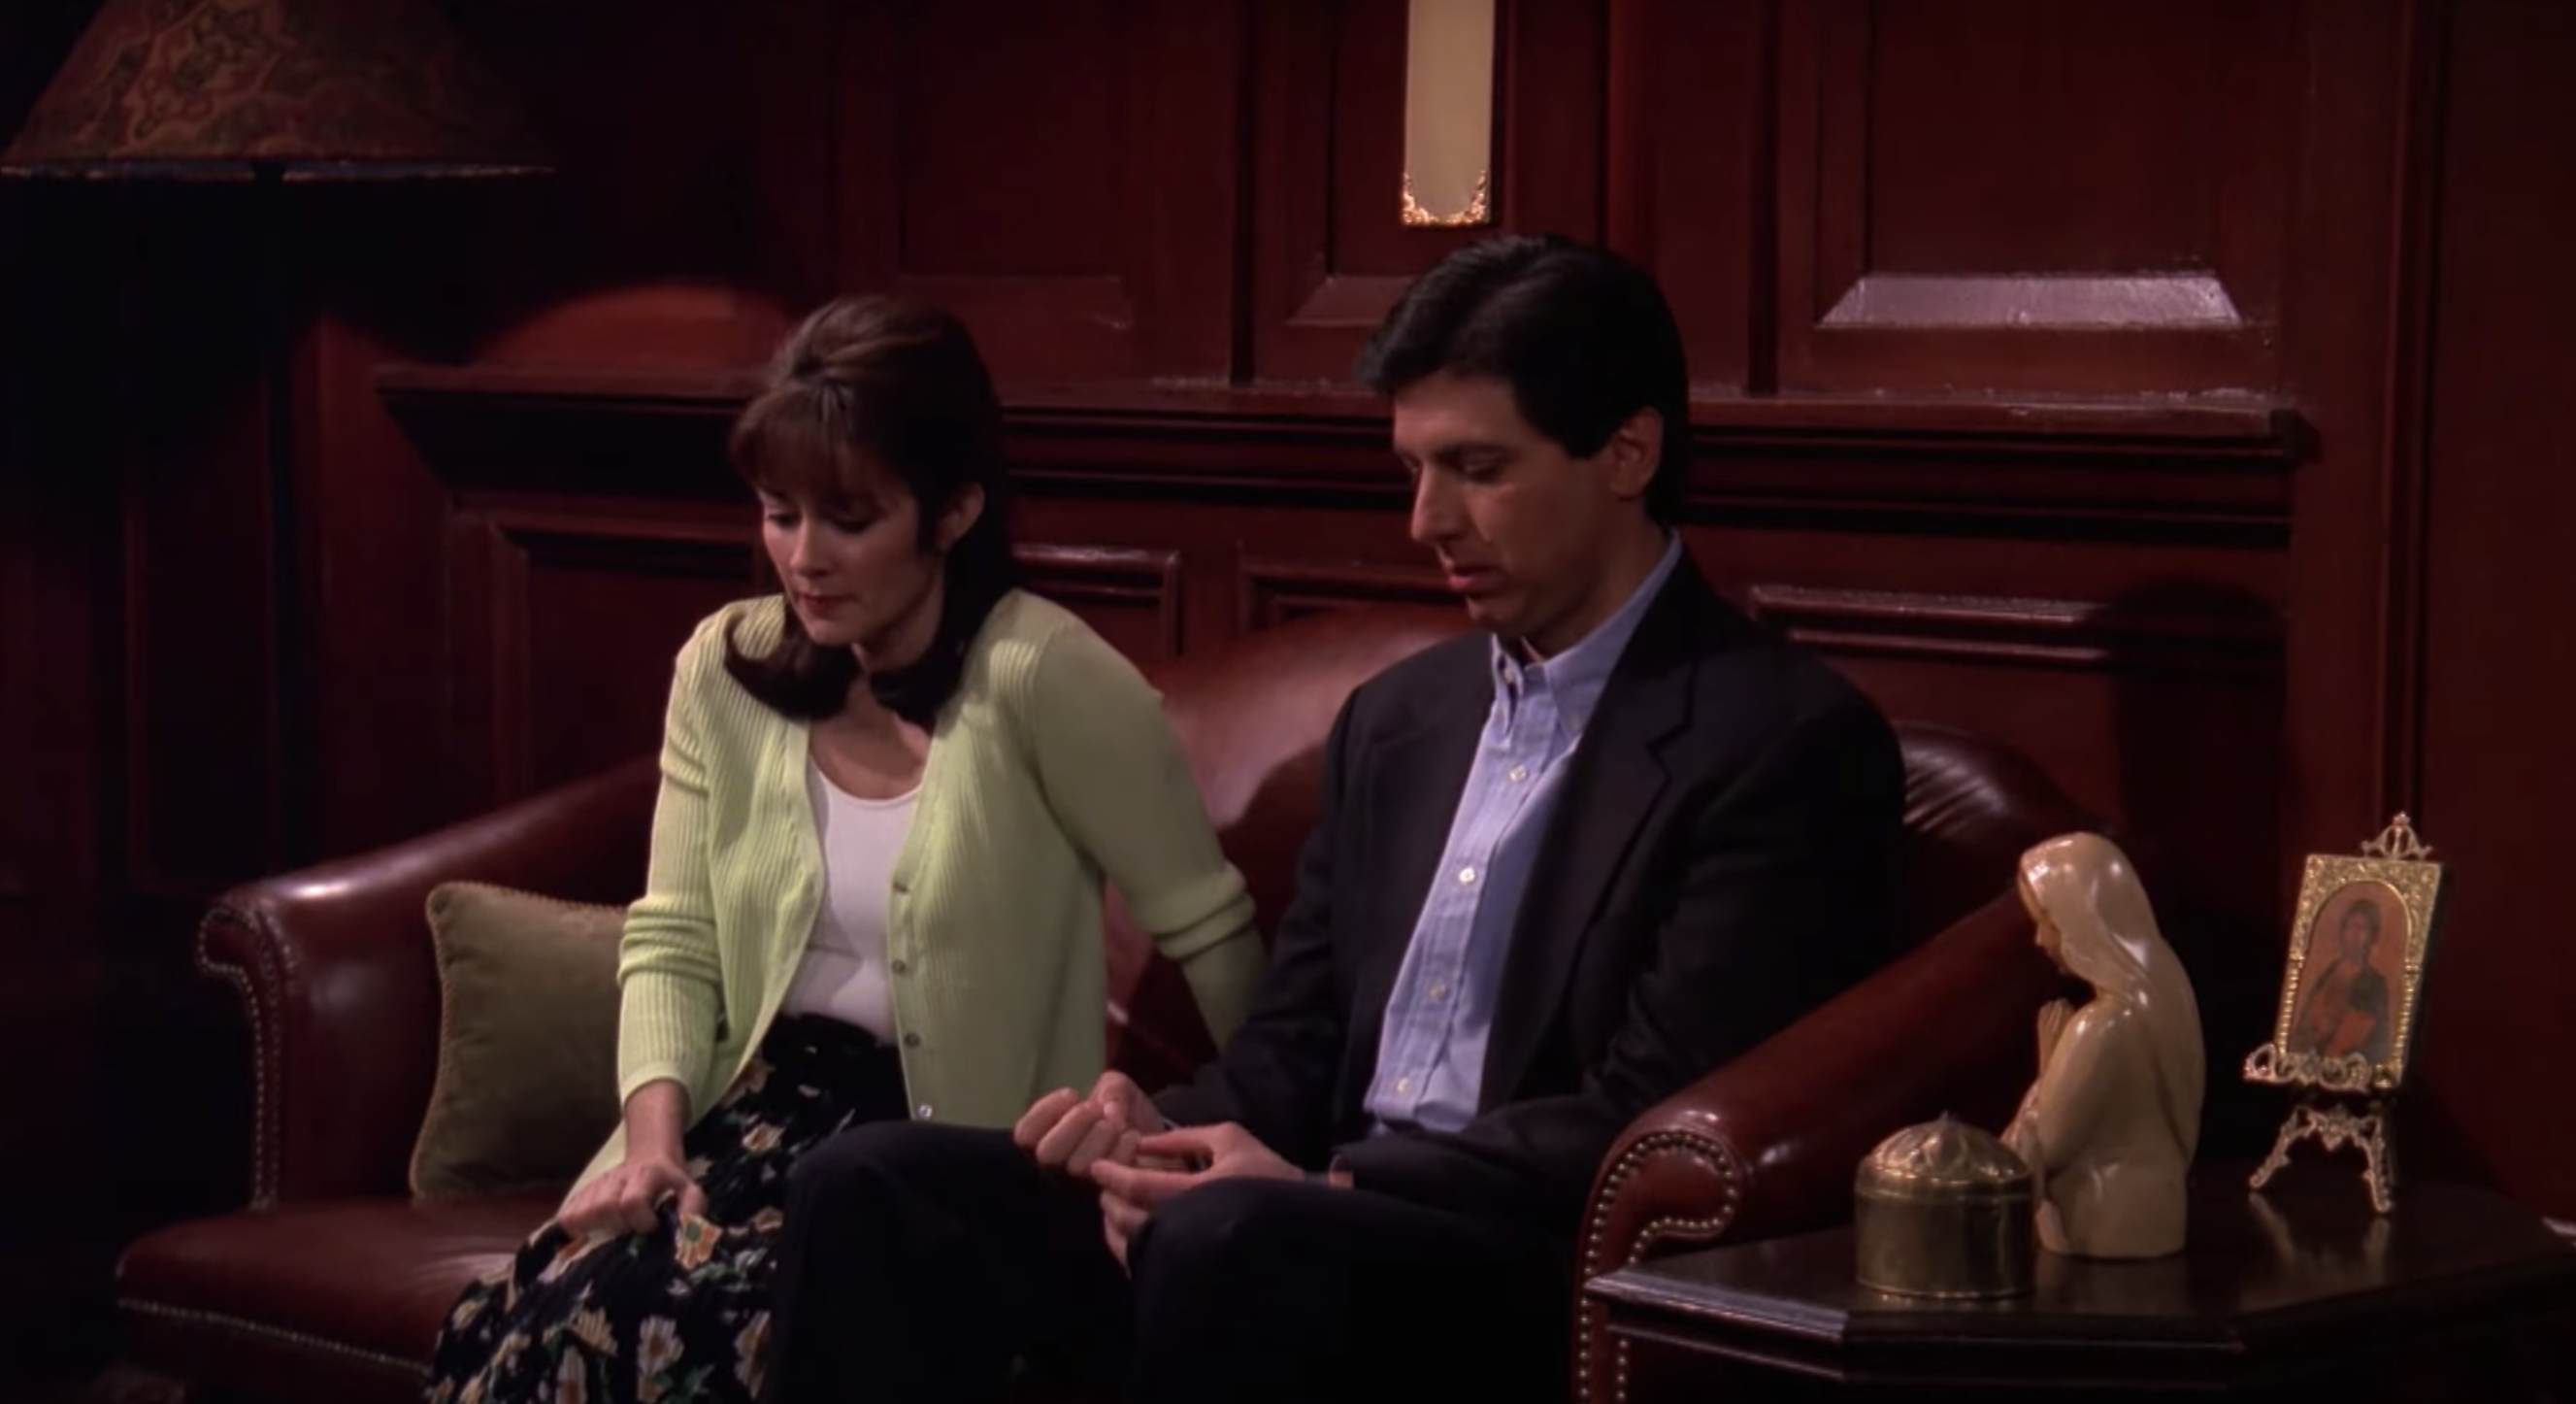 Ray and Debra sitting in an office in a church